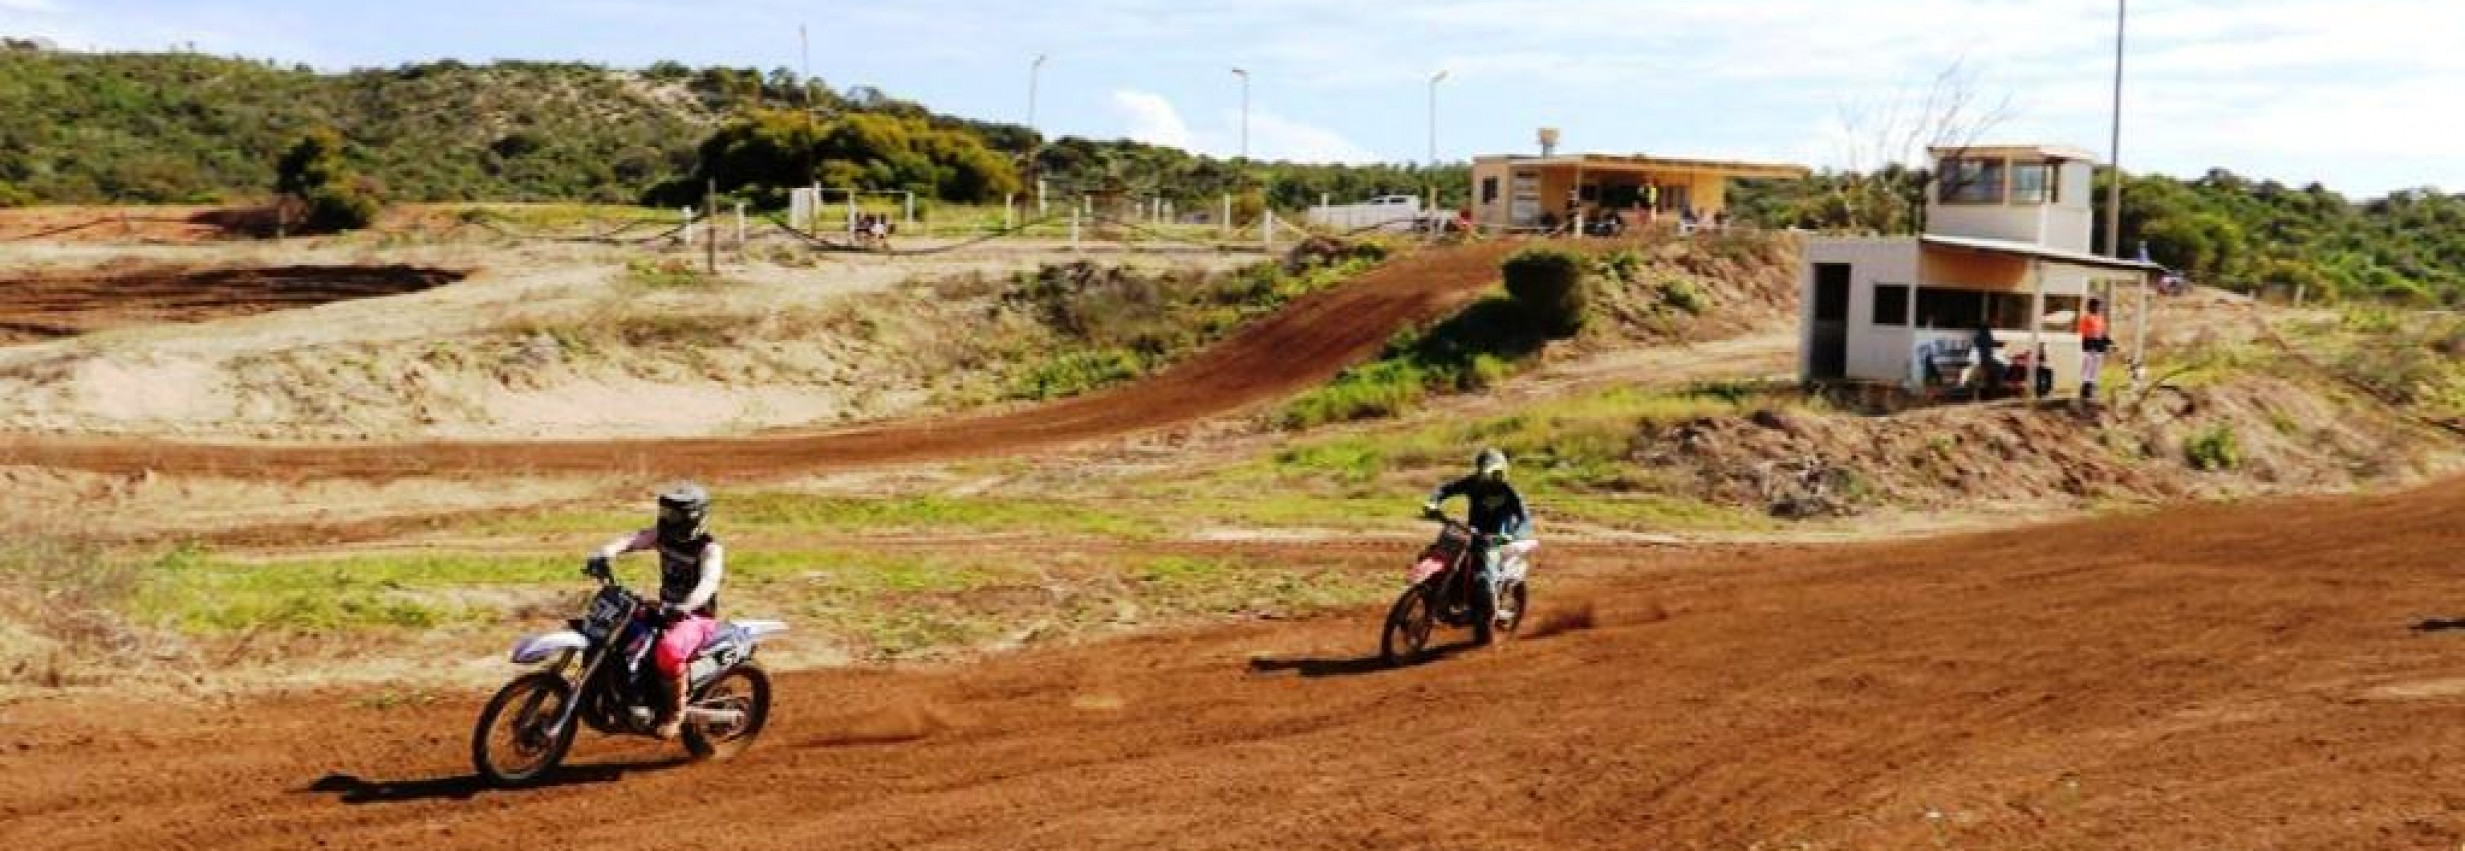 Geraldton Motocross Track – Geraldton Junior and Senior Motocross Club